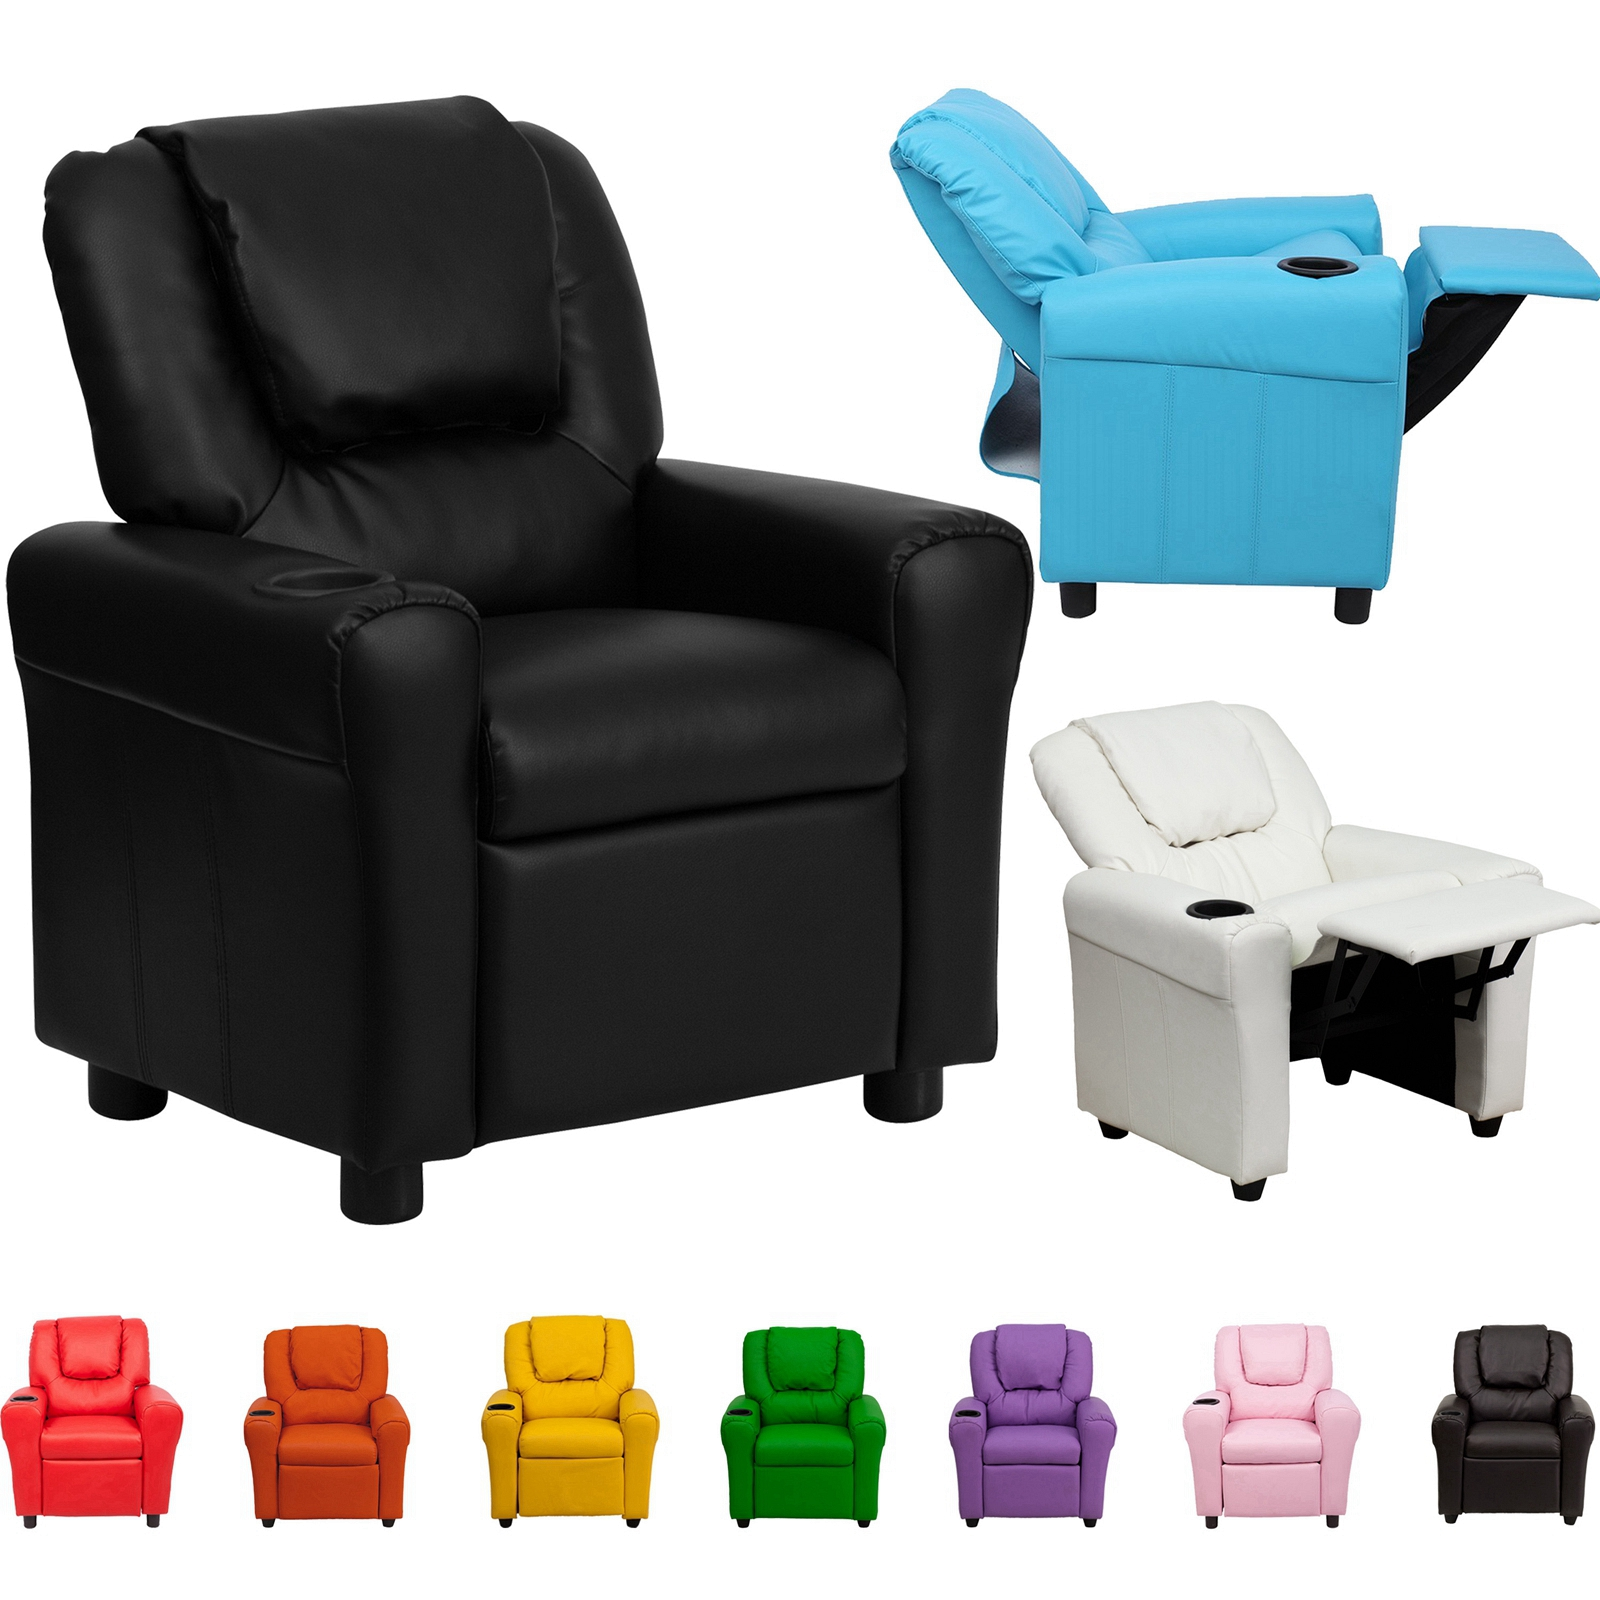 lounge chairs for kids knoll generation chair children recliner premium kid pu leather